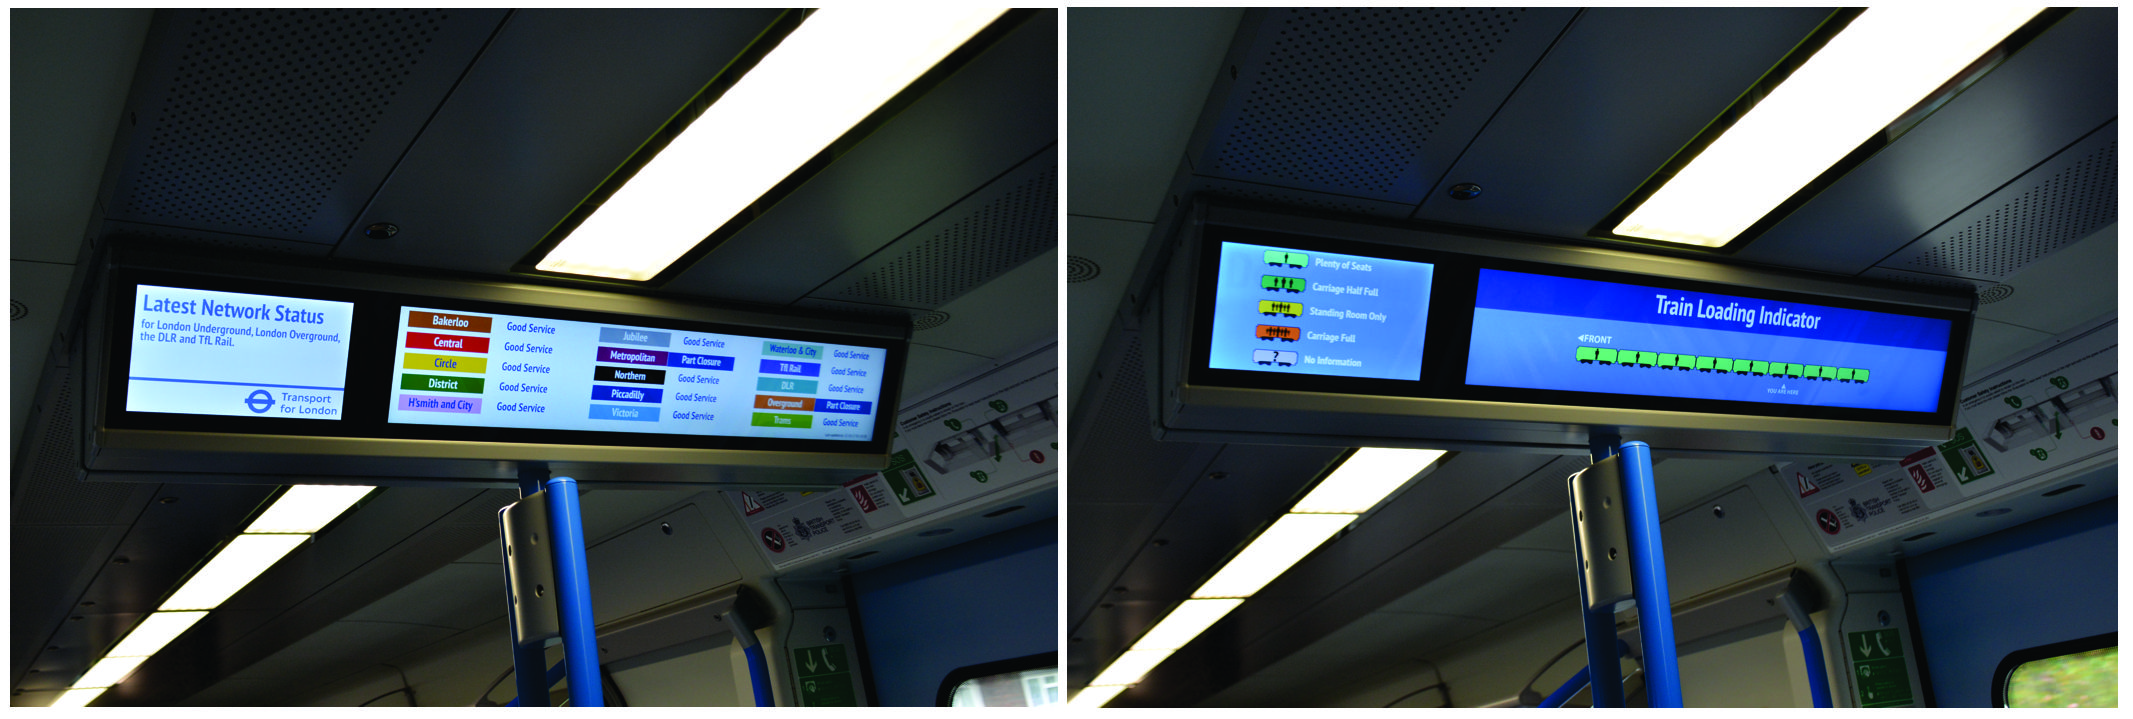 televic screens metro